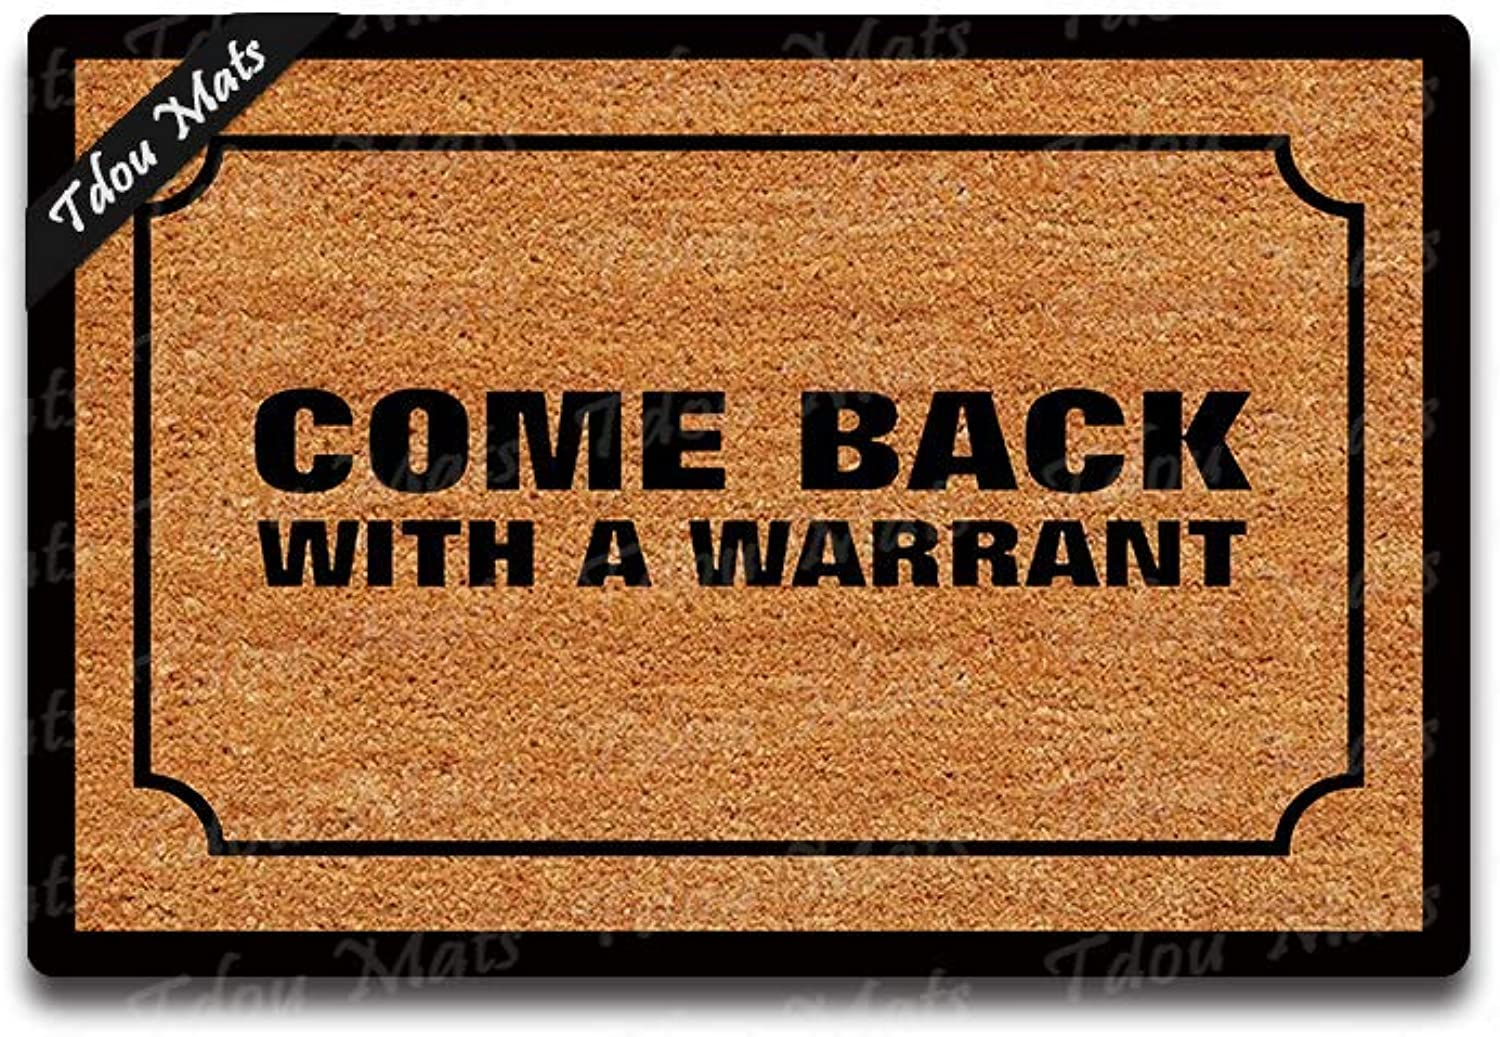 Tdou Come Back with A Warrant Doormat Funny Indoor Outdoor Doormat Funny Doormat Home and Office Decorative Indoor Outdoor Kitchen Mat Non-Slip Rubber 23.6 x15.7